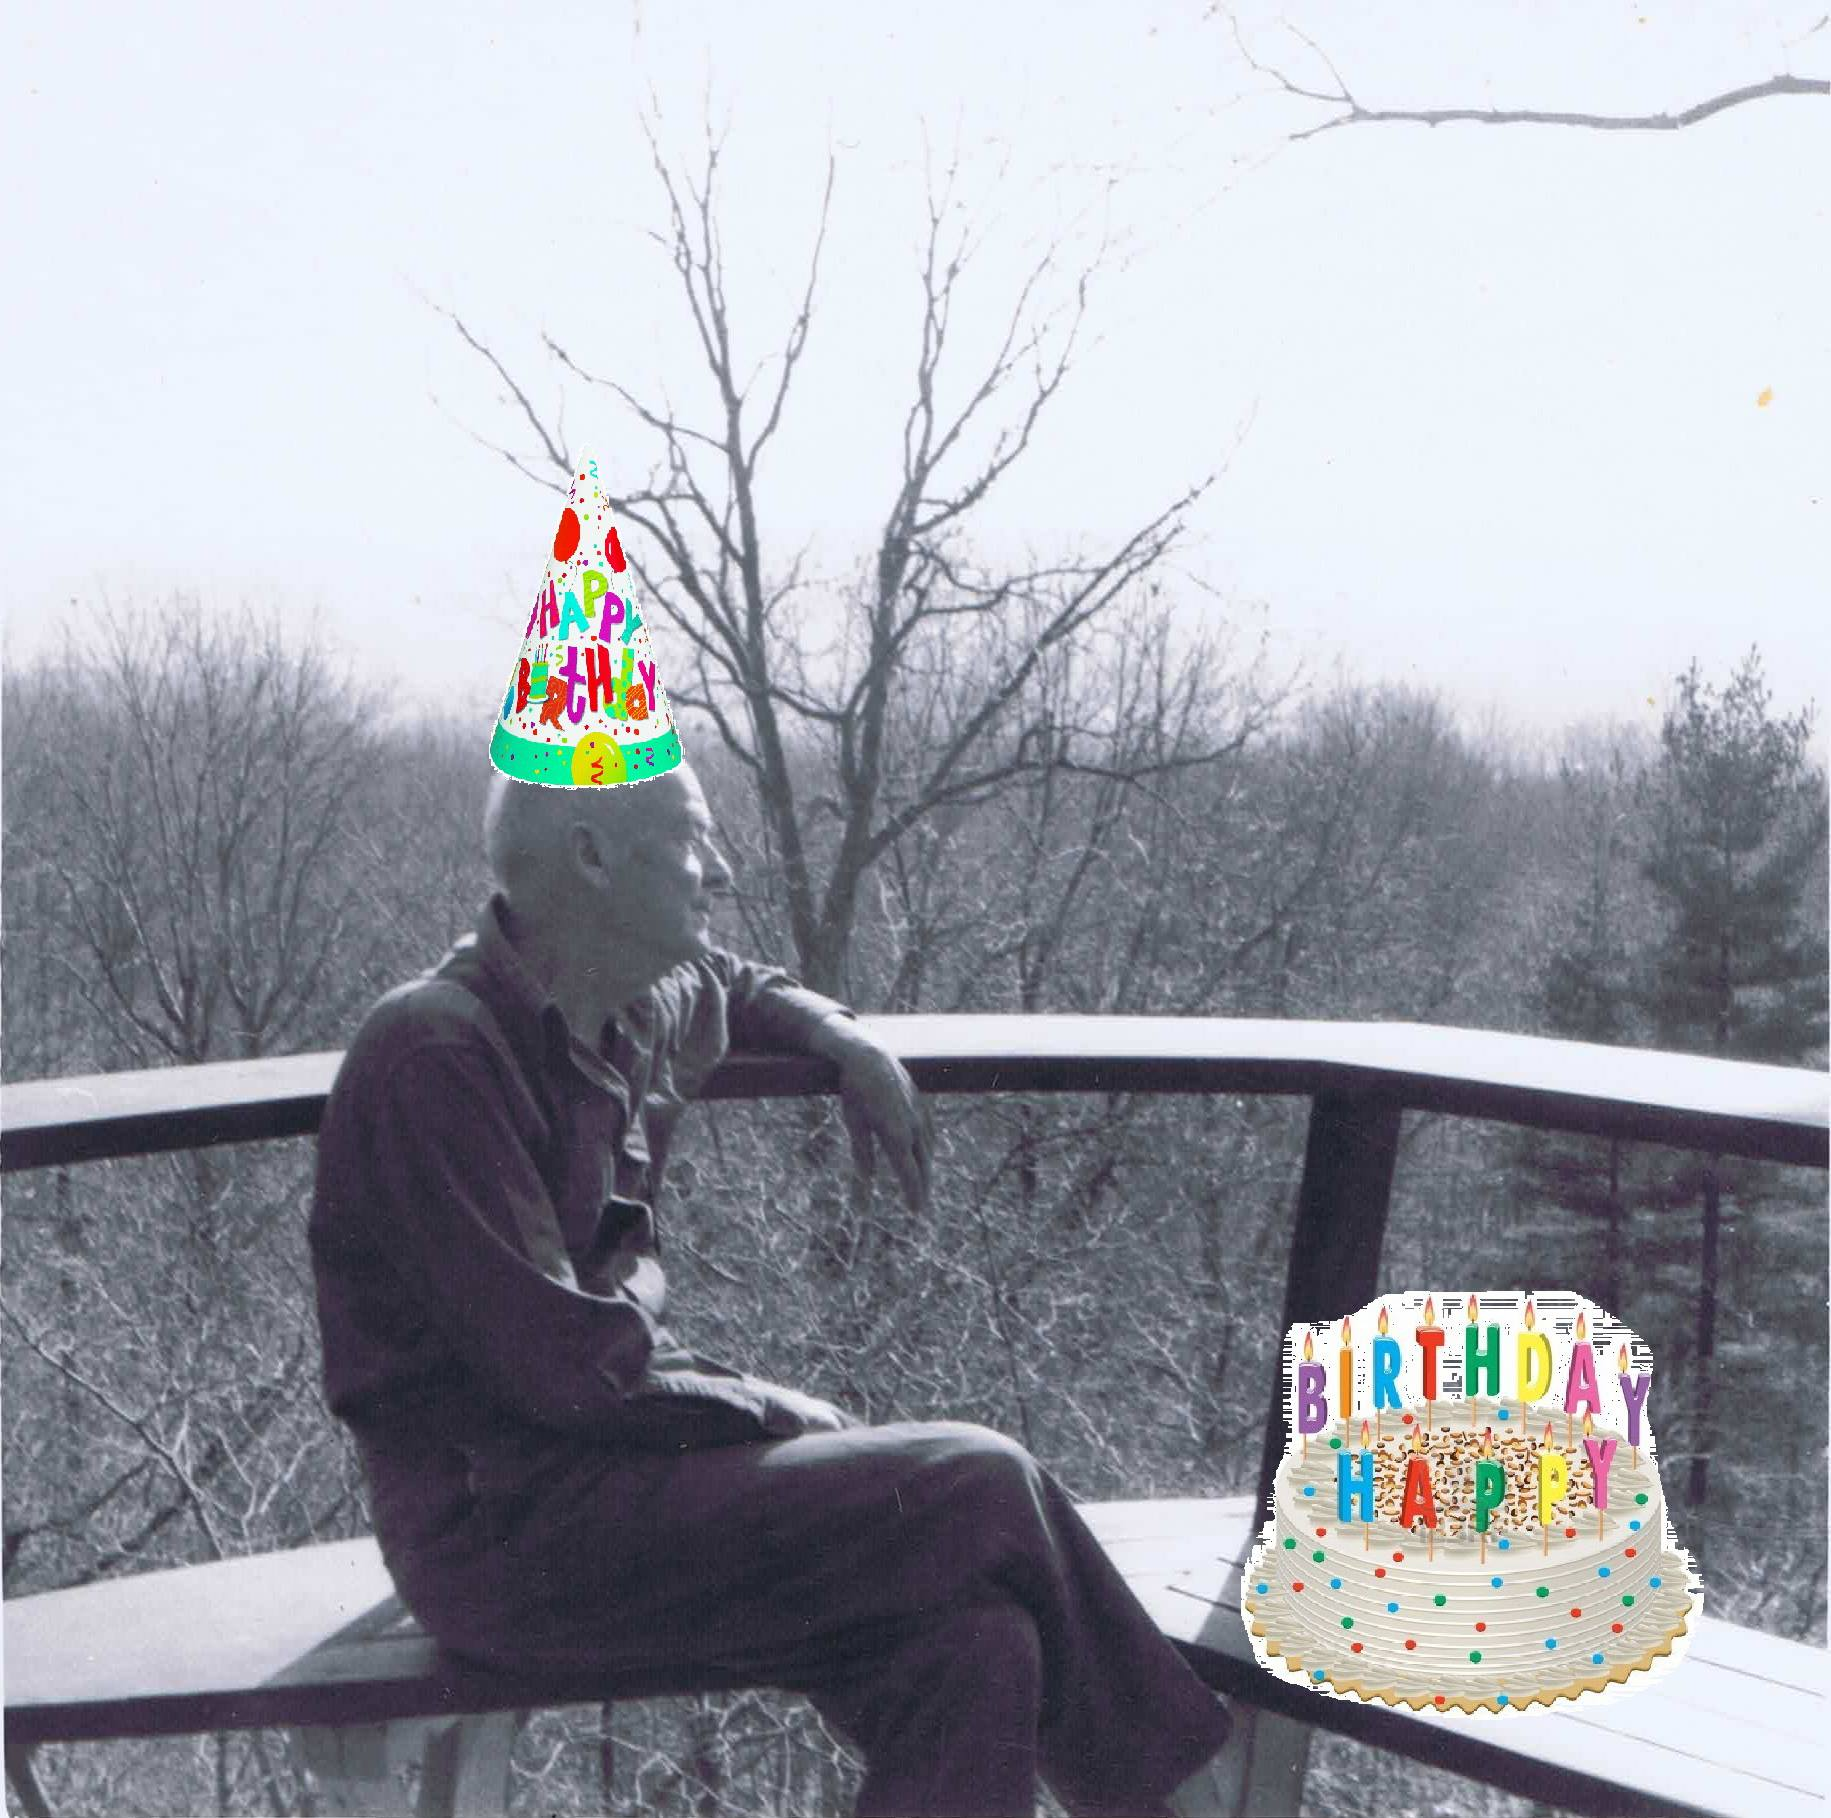 wharton with photoshopped birthday cake on the deck